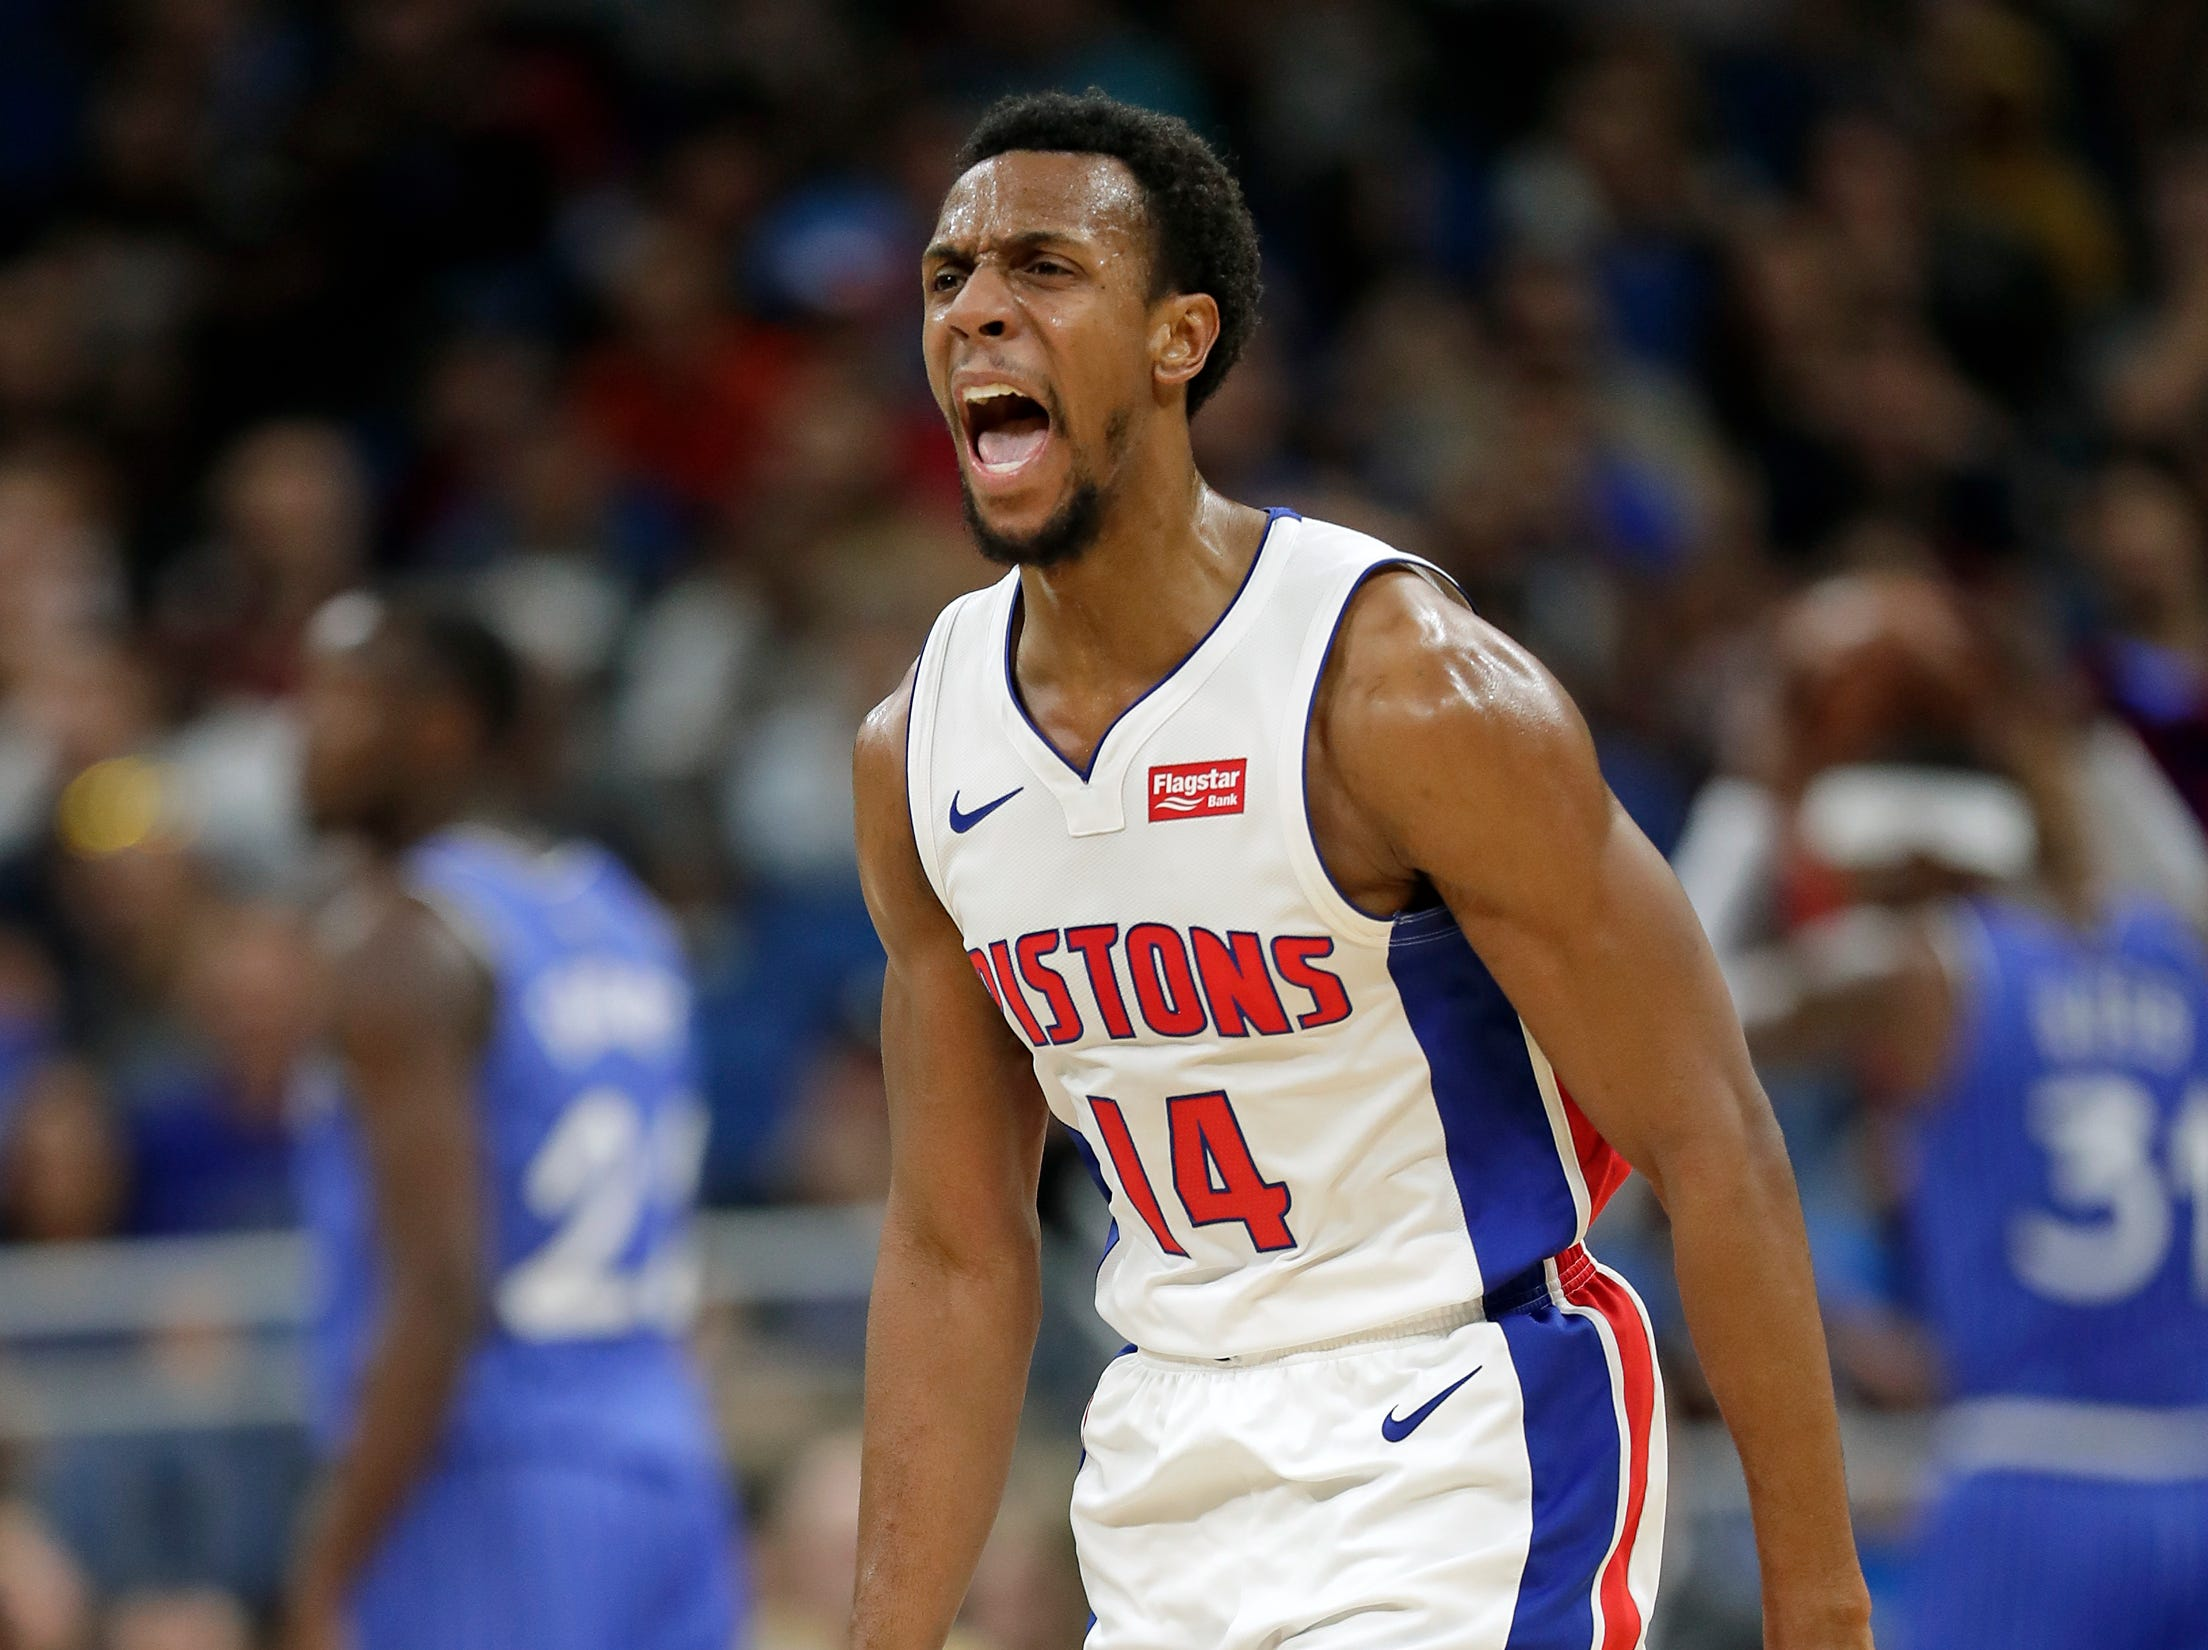 Detroit Pistons' Ish Smith celebrates after a teammate made a 3-point shot against the Orlando Magic during the second half of an NBA basketball game, Wednesday, Nov. 7, 2018, in Orlando, Fla.